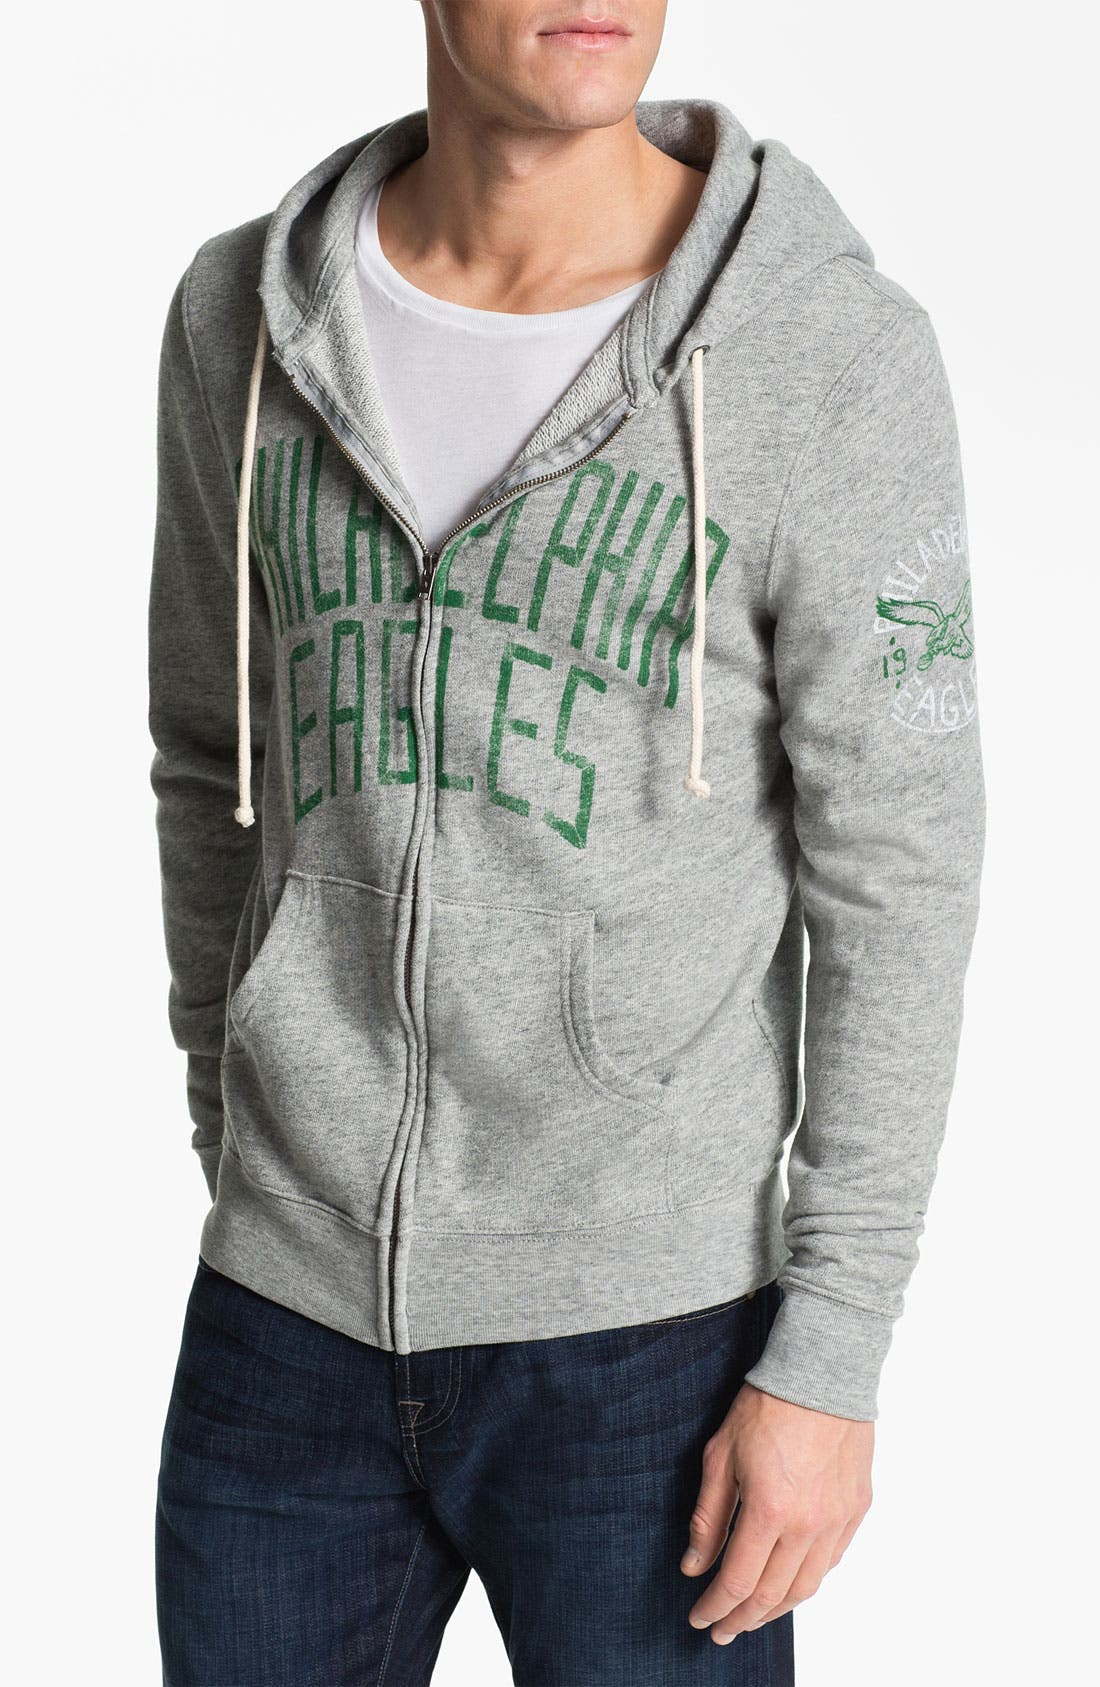 Alternate Image 1 Selected - Junk Food 'Philadelphia Eagles' Zip Hoodie